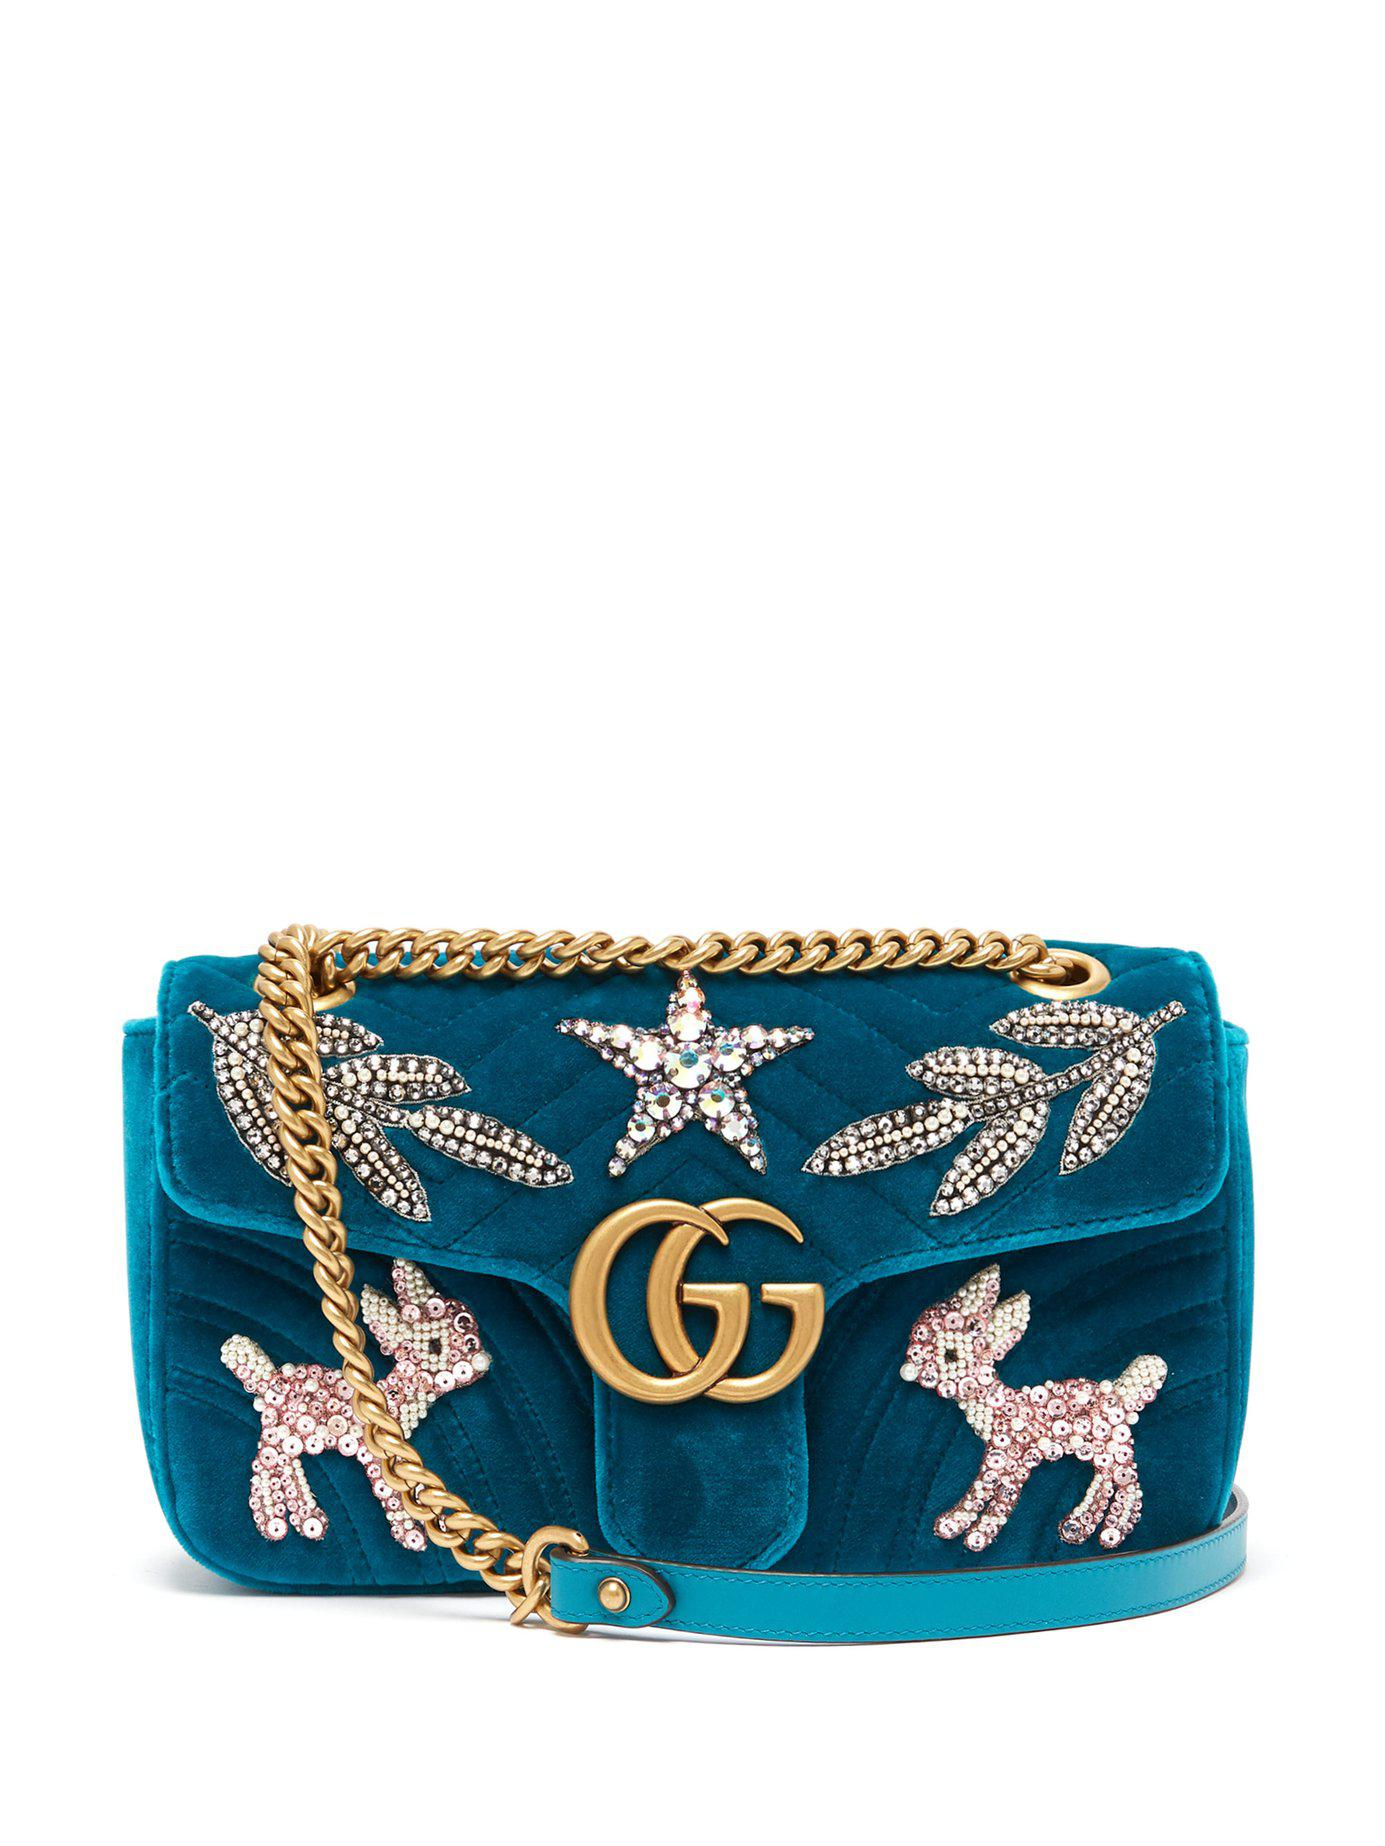 97c220c5dc9f2 Lyst - Gucci Gg Marmont Small Embellished Velvet Cross Body Bag in Blue